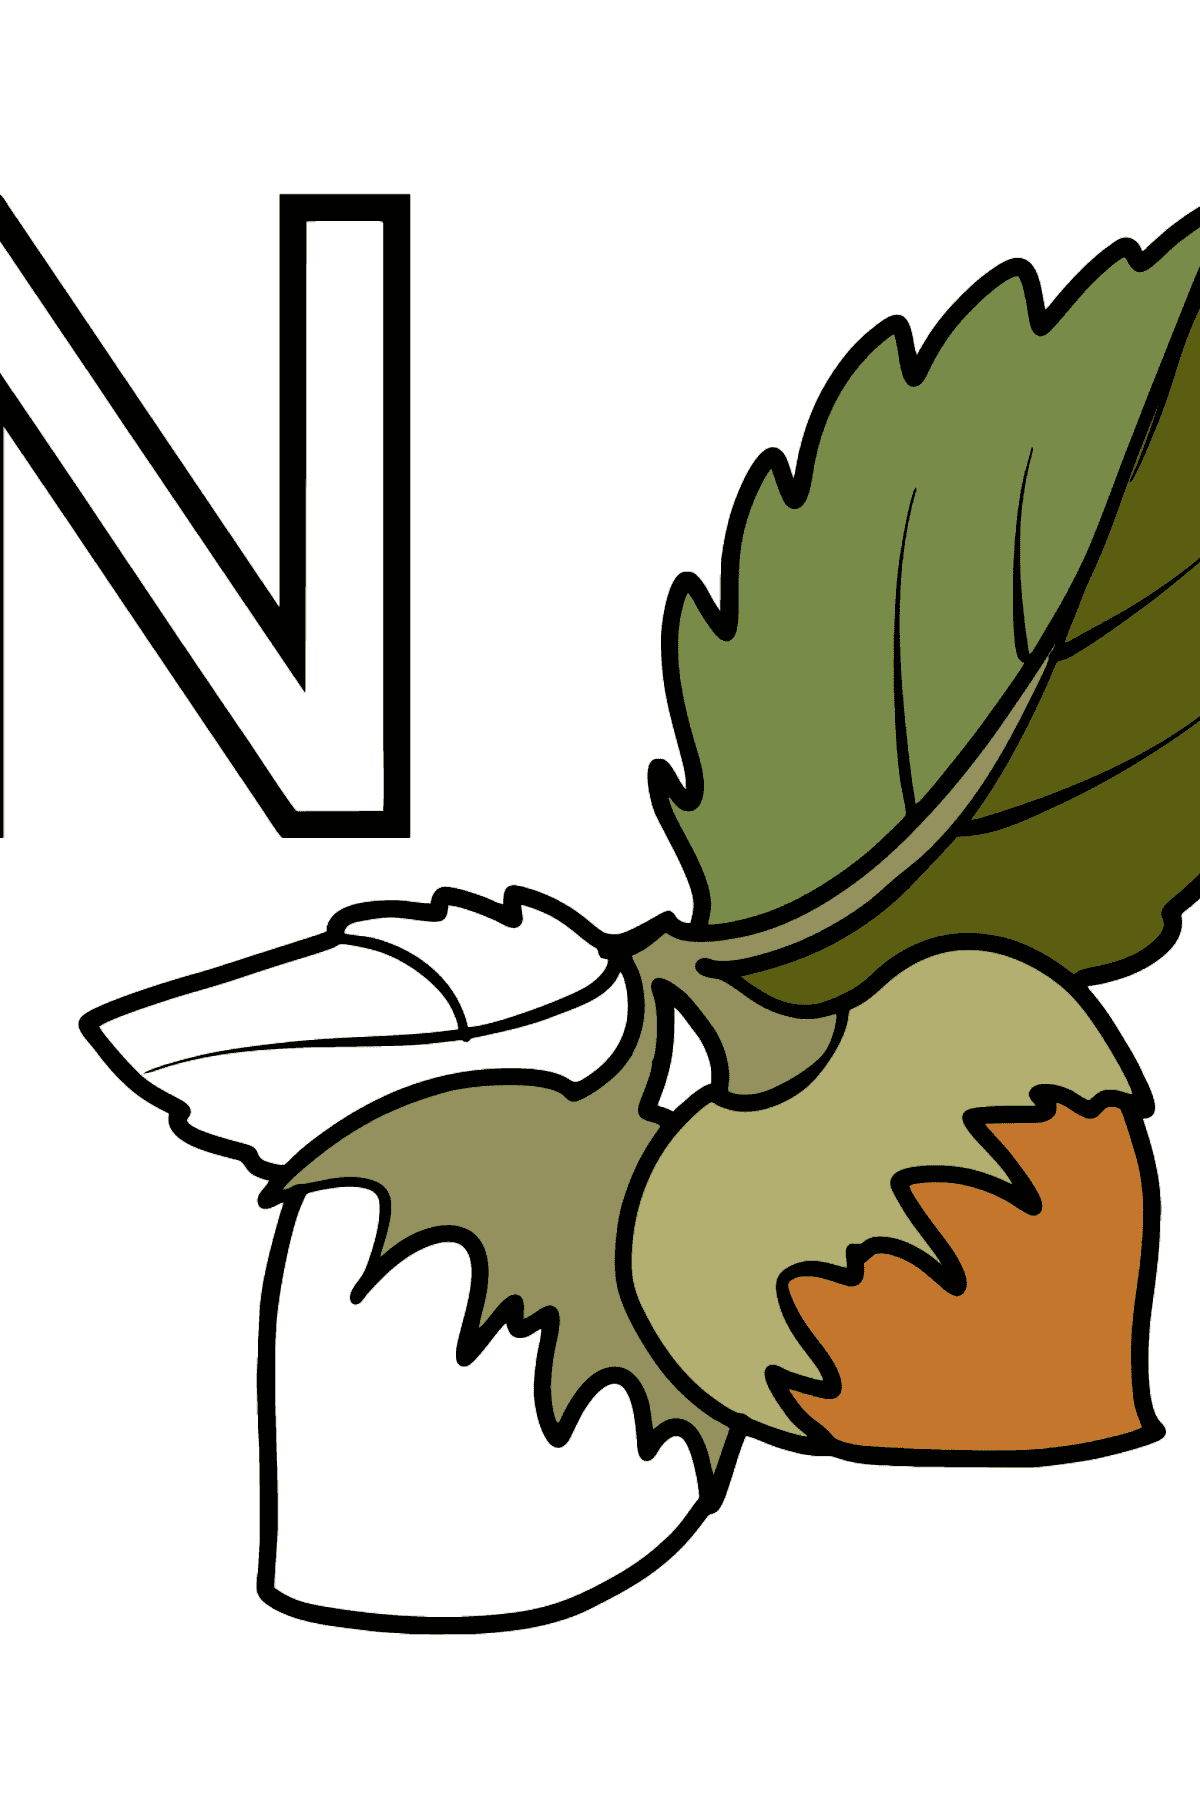 English Letter N coloring pages - NUTS - Coloring Pages for Kids